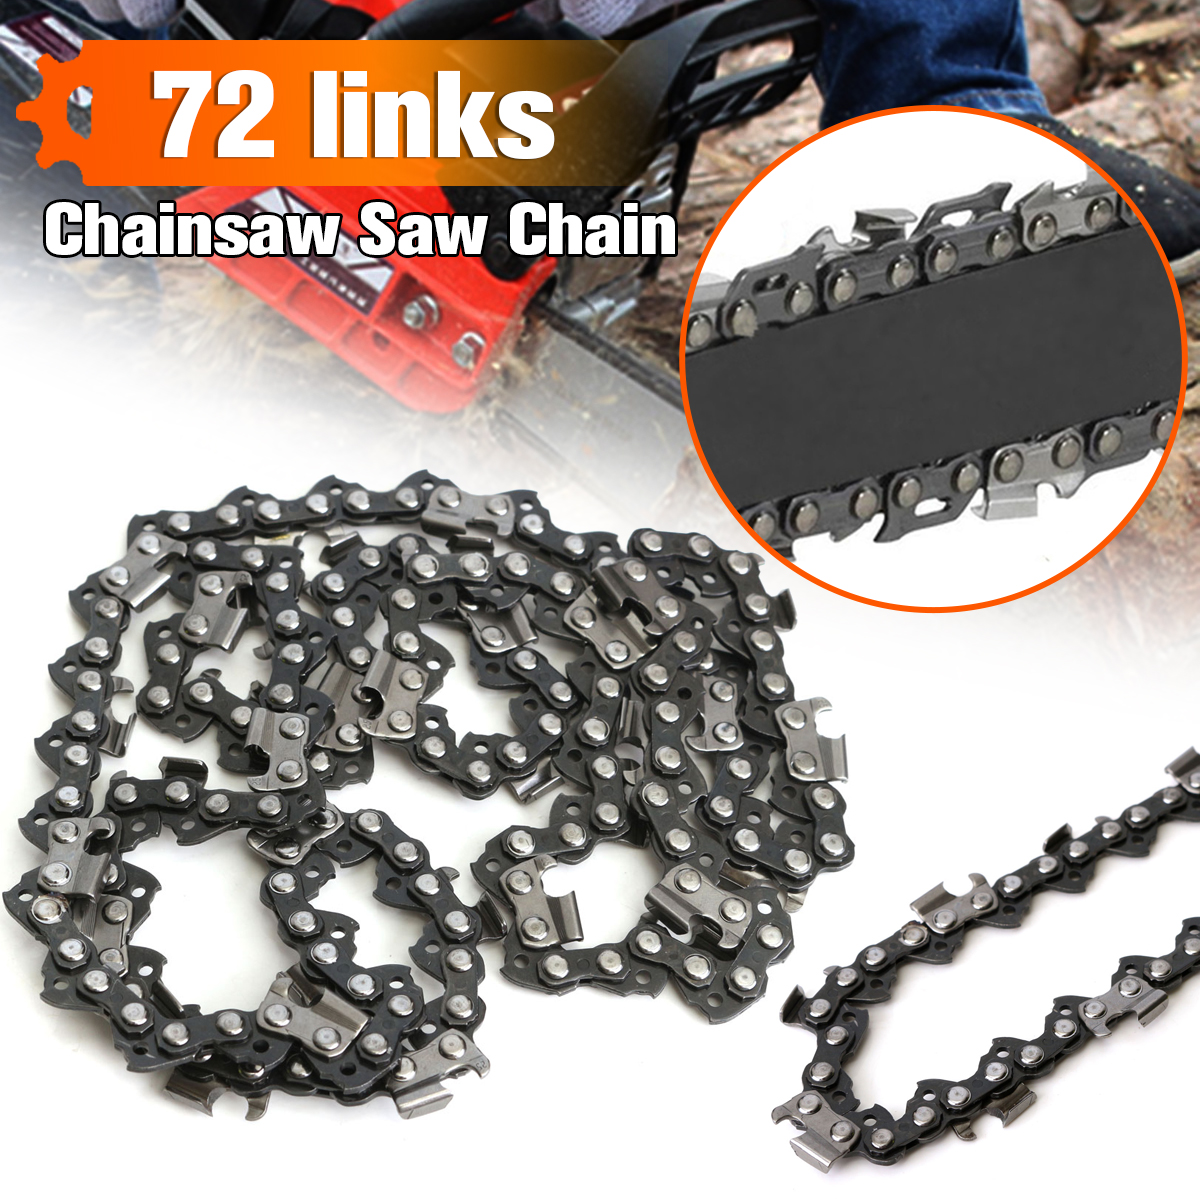 Doersupp  72 Link Chainsaw Saw Chain MetalFits For Chinese Import 4500 & 5200 Etc For Use On Portable Chain Saw Mills Smooth